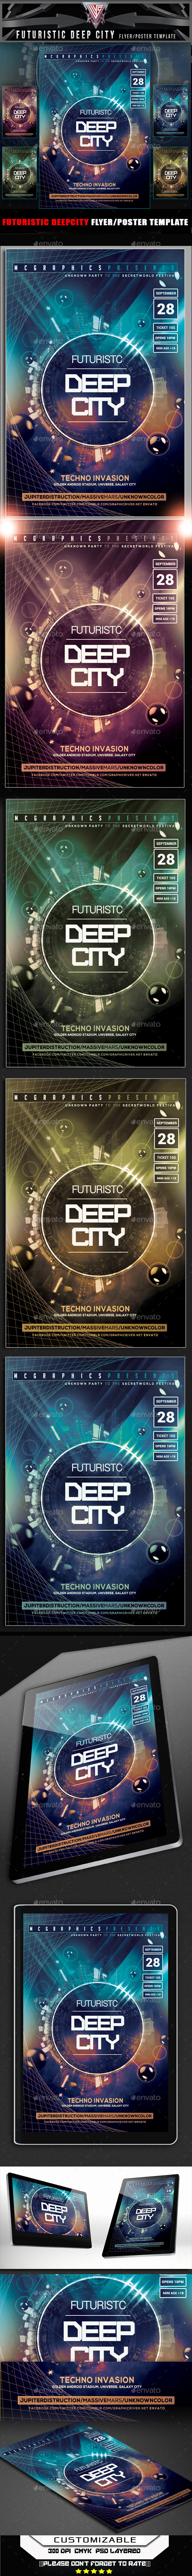 Futuristic Deep City Flyer Template - Clubs & Parties Events